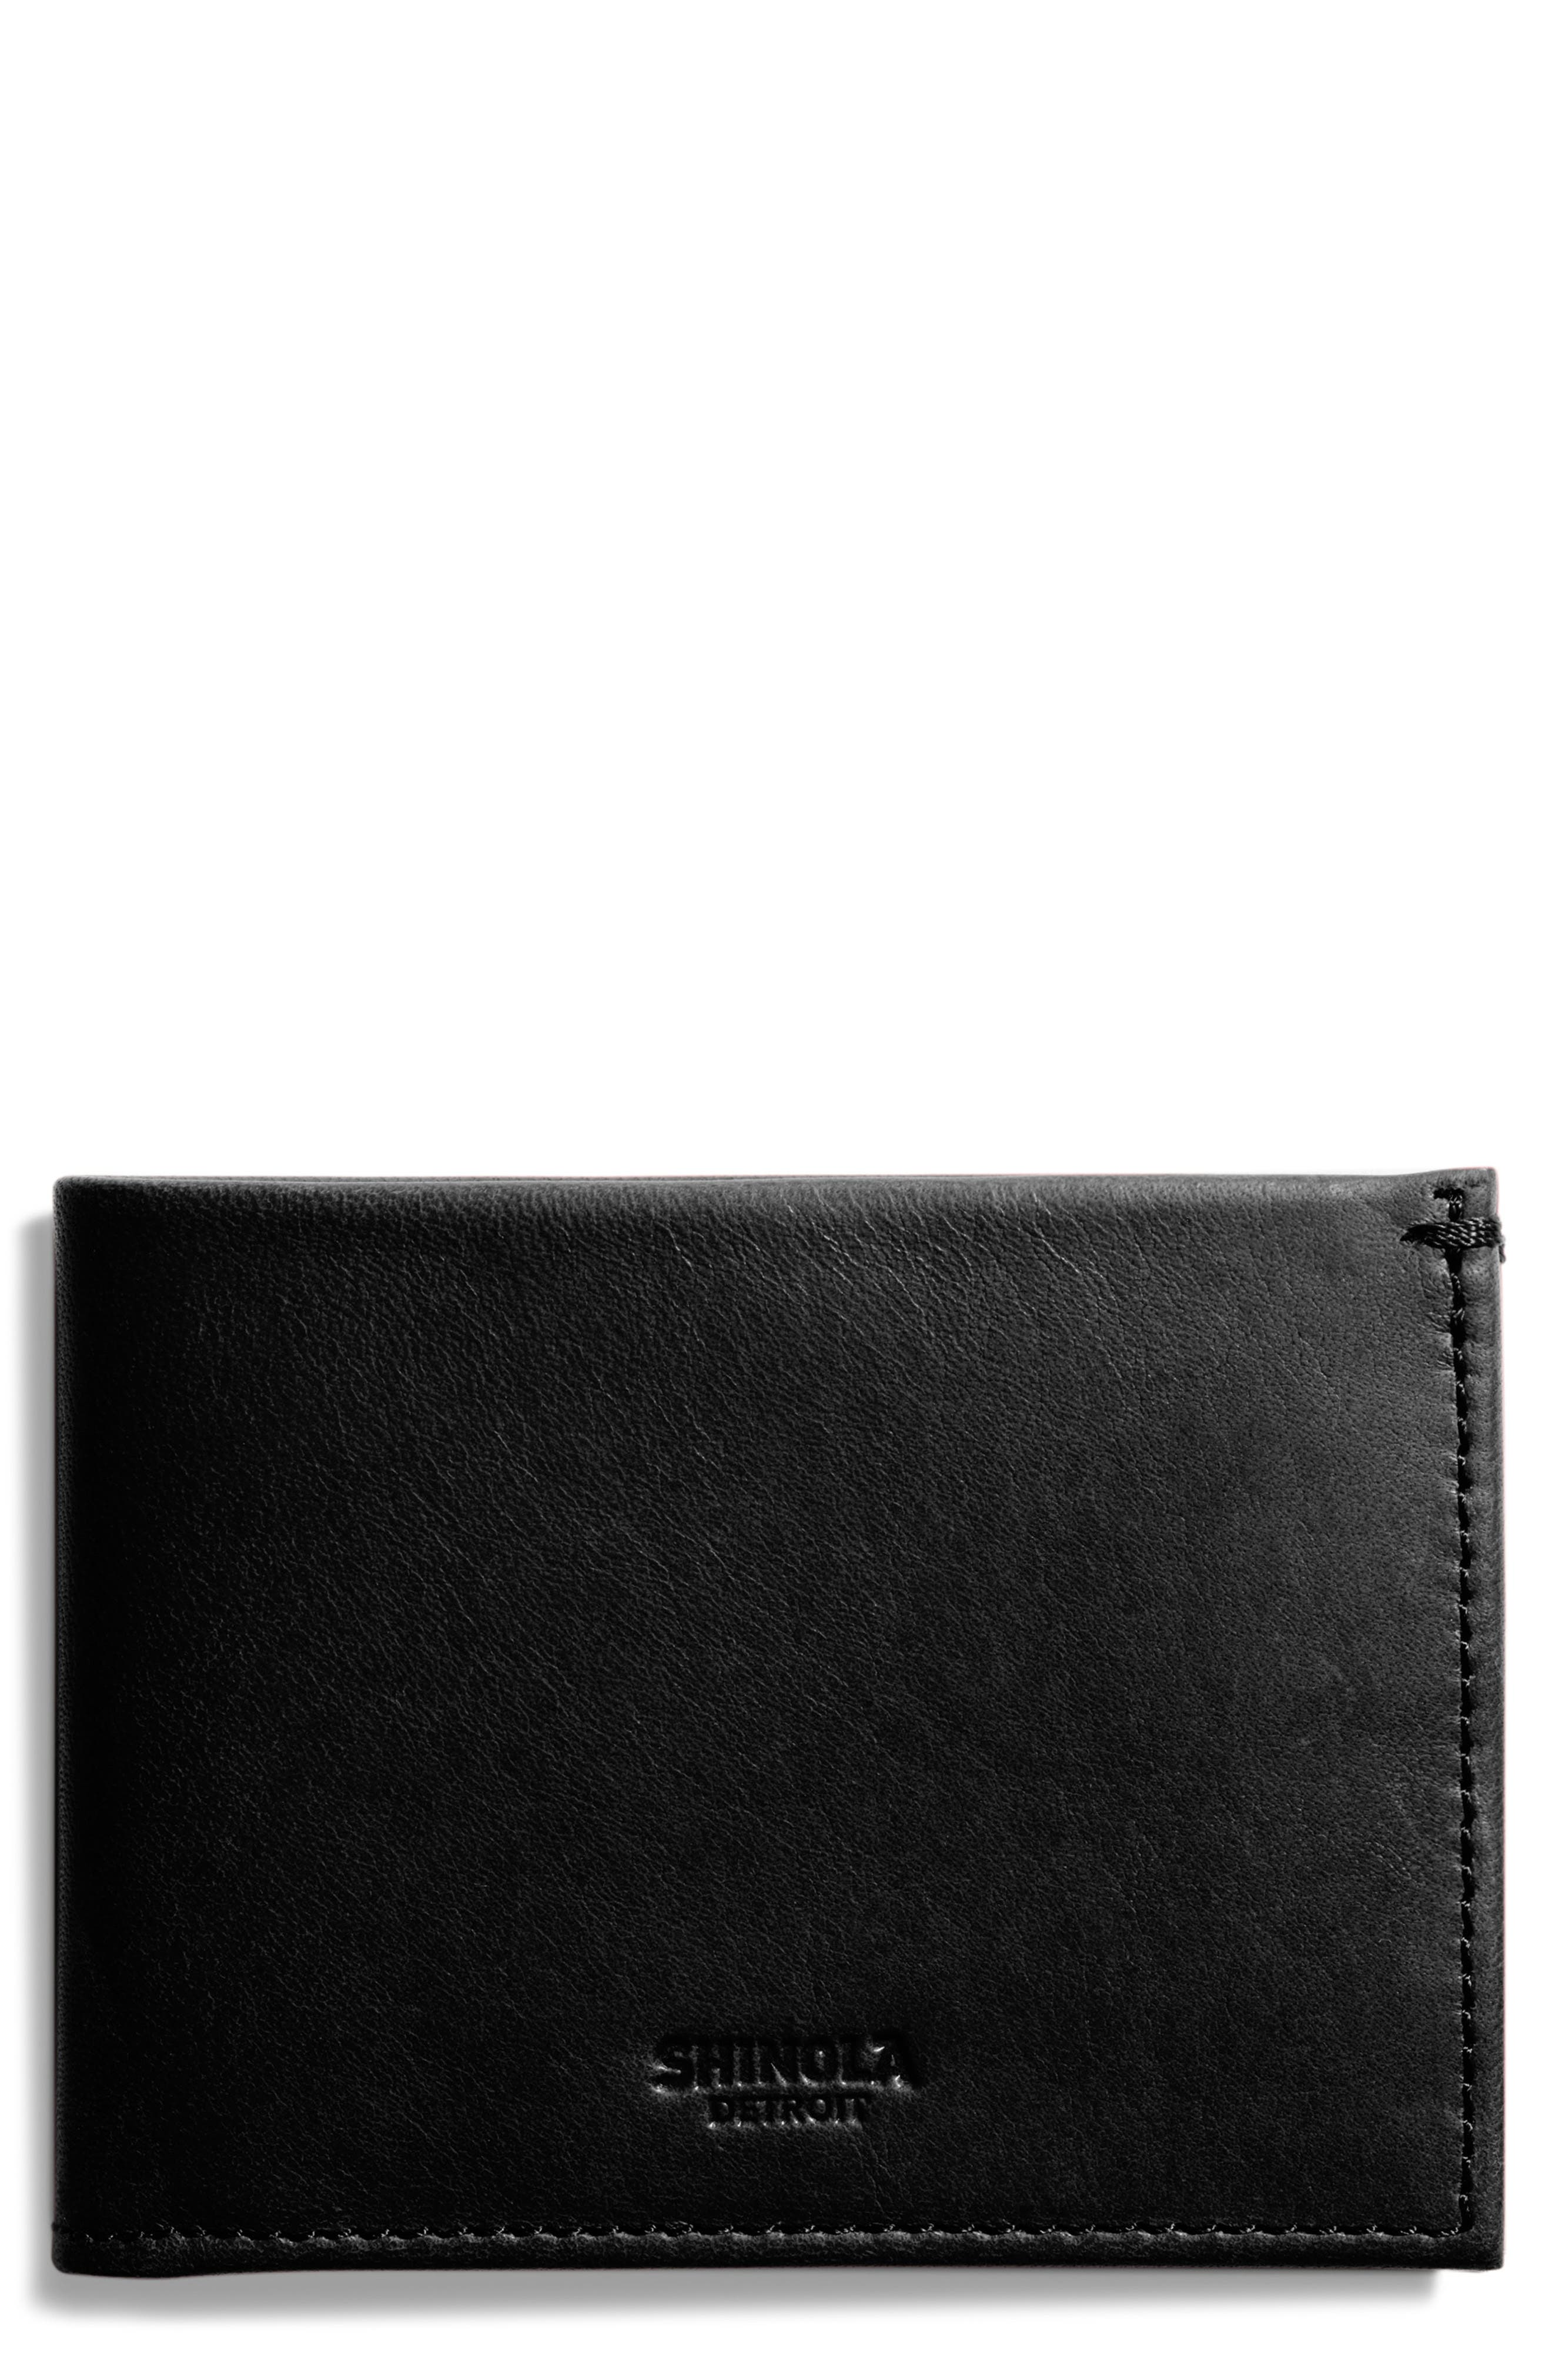 SHINOLA, Slim Bifold Leather Wallet, Main thumbnail 1, color, BLACK